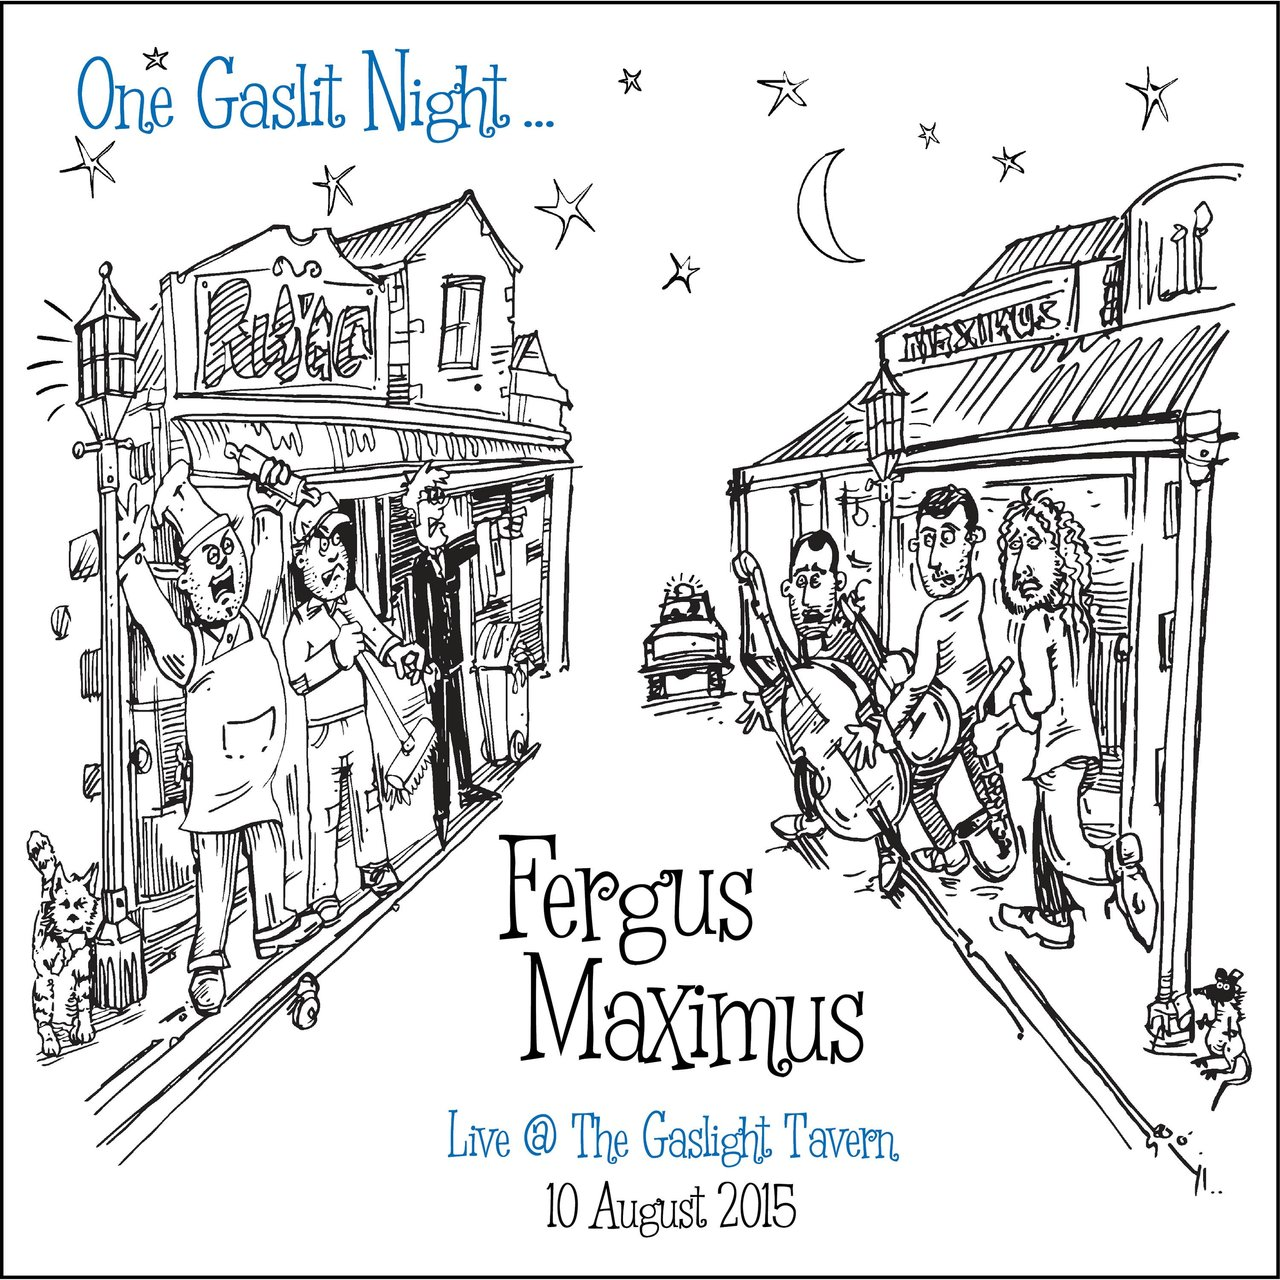 One Gaslit Night (Live at the Gaslight Tavern)